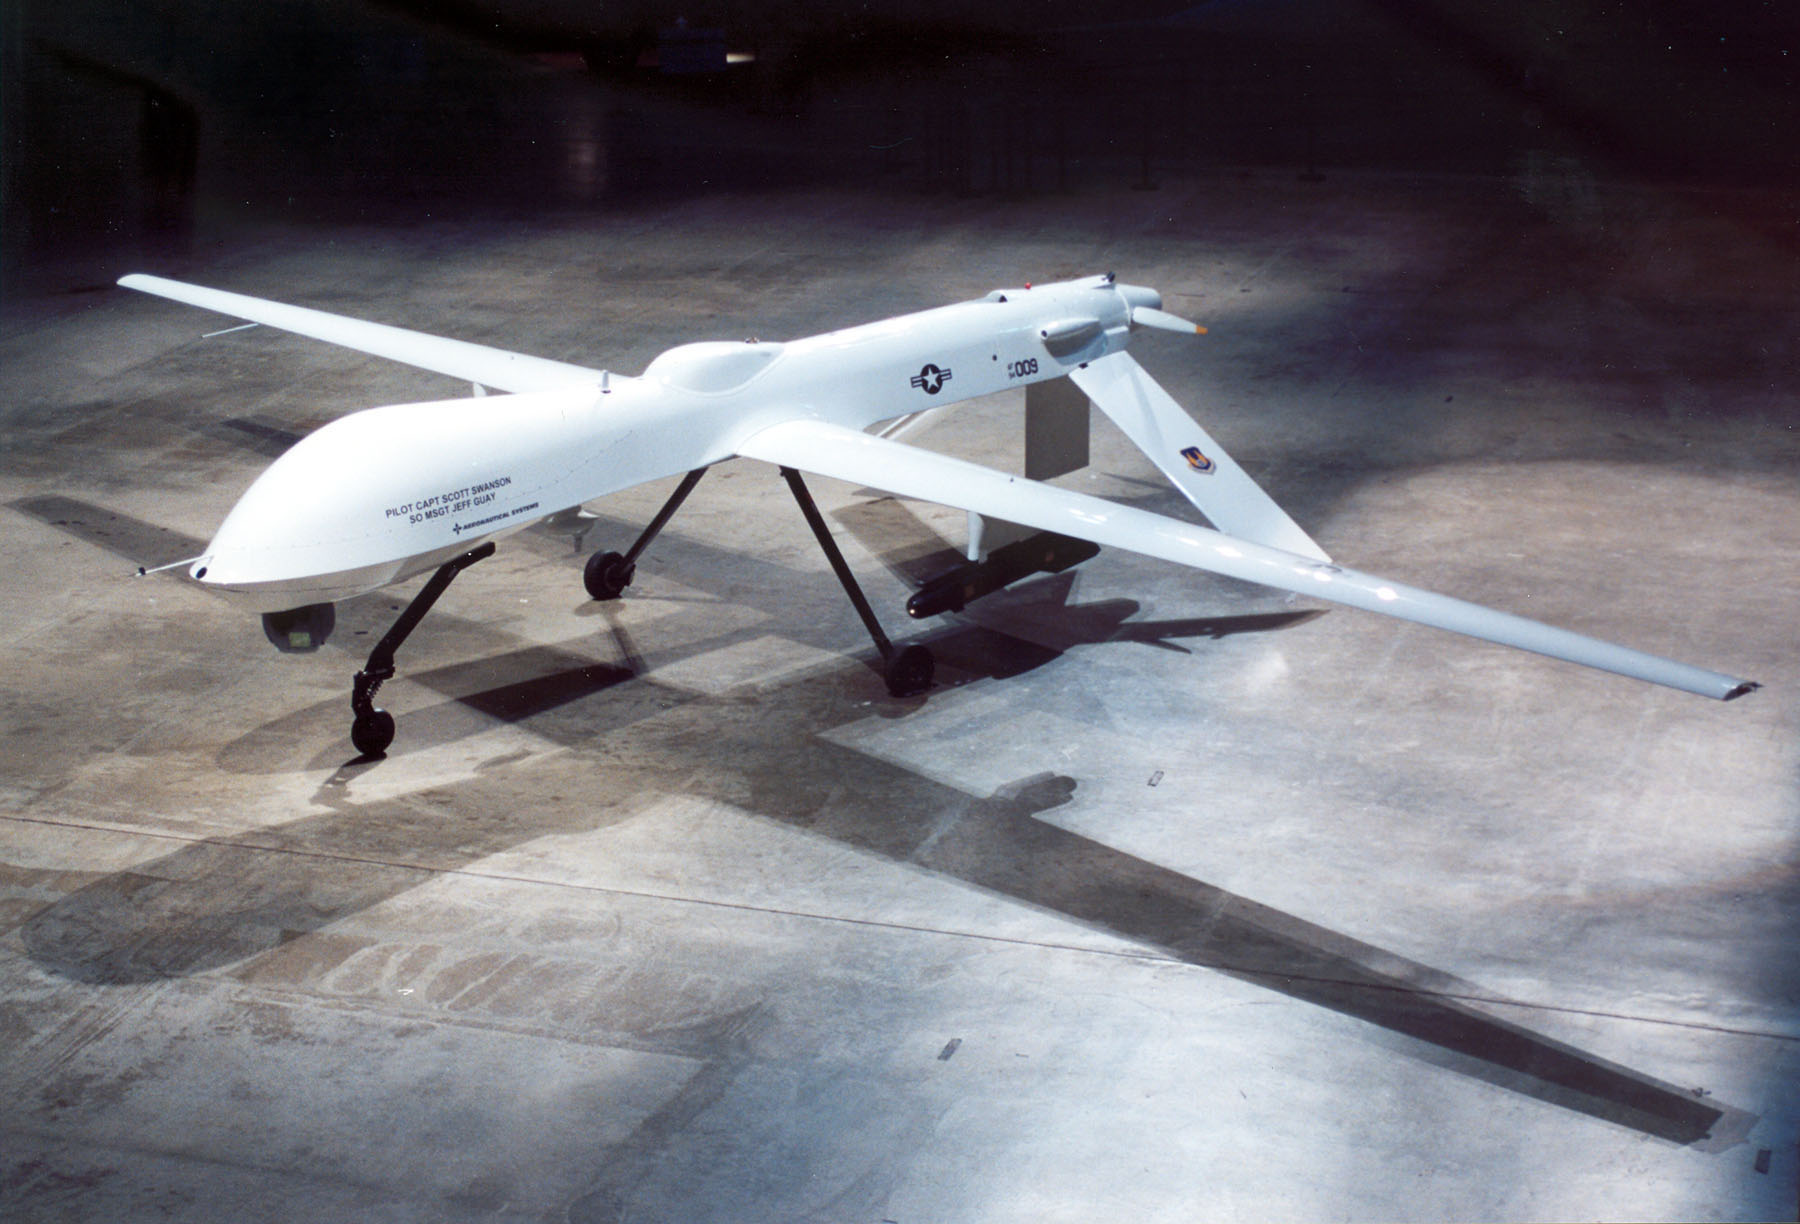 fly drones for the air force with Predator Drone That Started It All on France Trains Eagles To Attack Drones in addition Iraqi Air Force Got Ch 4b Uav From China further Watch in addition Predator Drone That Started It All as well La Dolce Obliteration Italian Air Force Release Detailed Surveillance Footage Showing Predator Drone Attacks ISIS Terrorists Iraq.